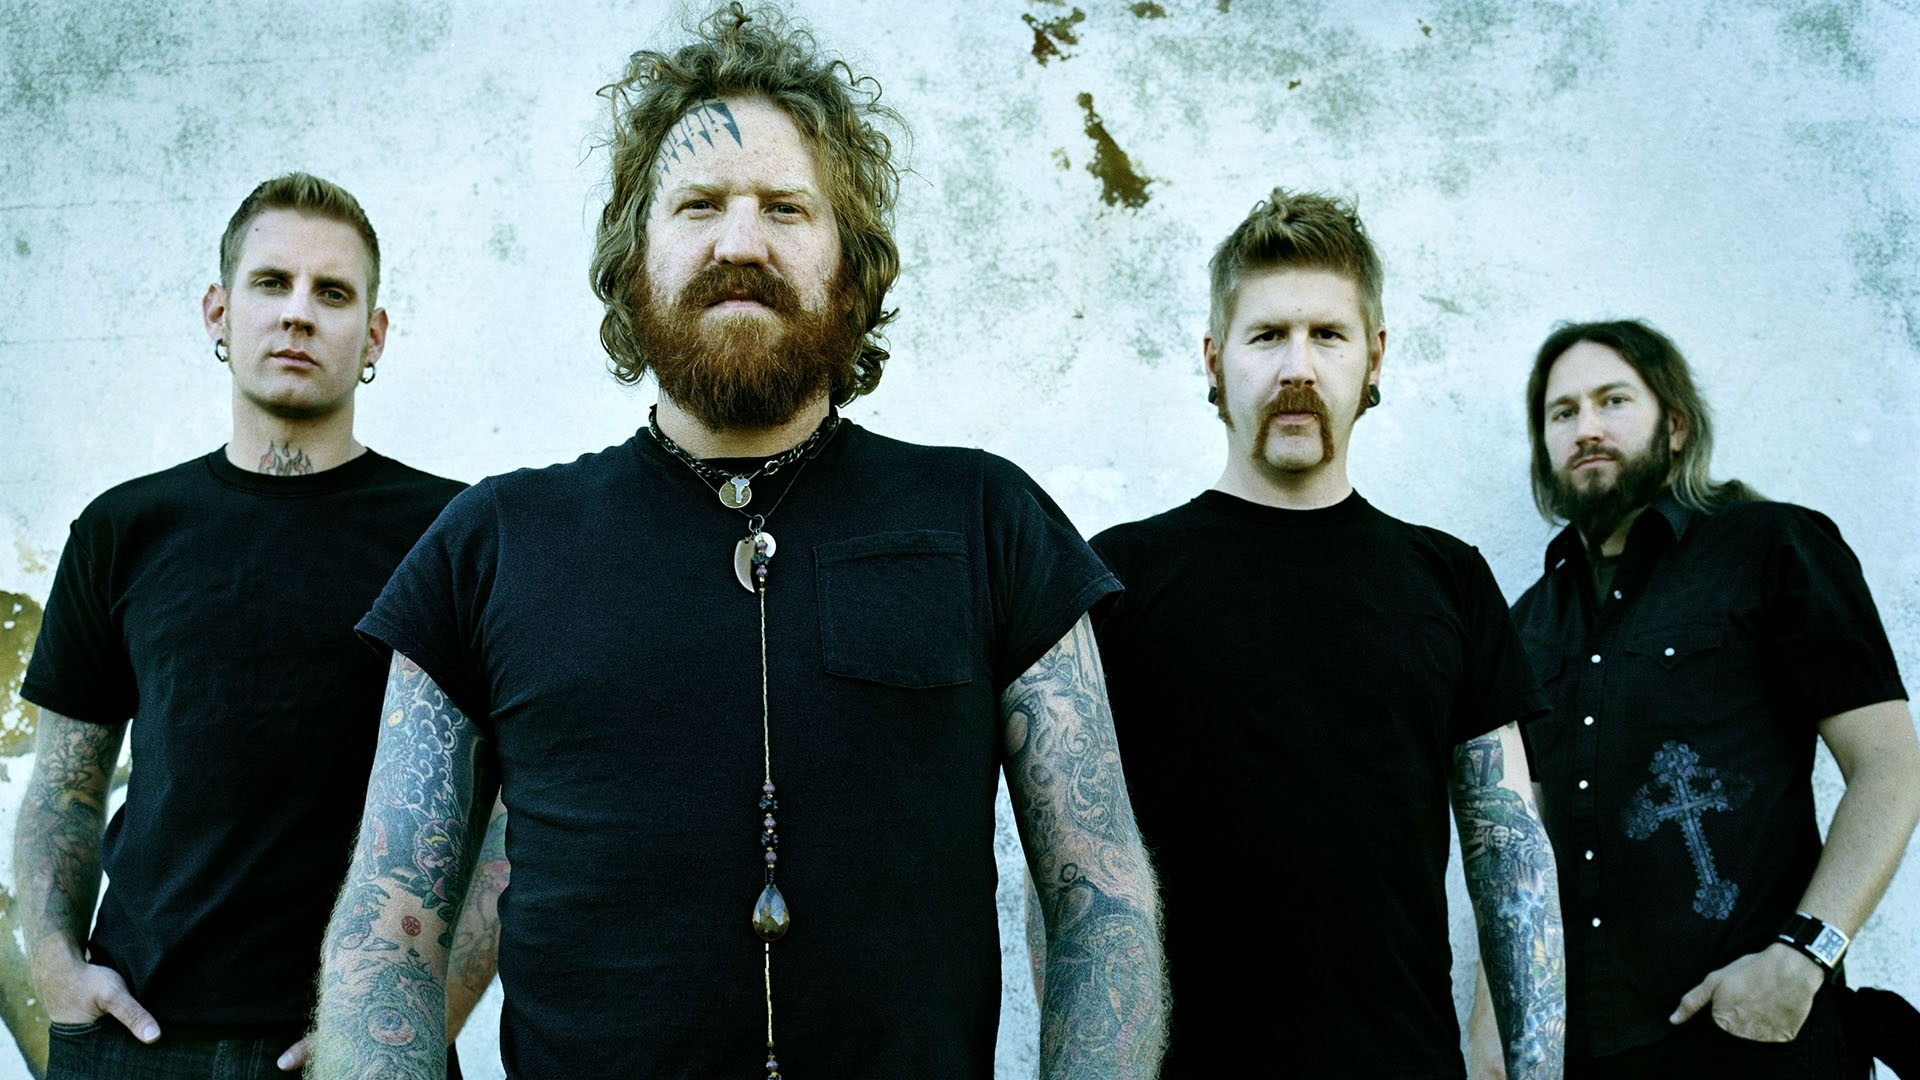 1920x1080 Preview wallpaper mastodon, earrings, t-shirts, chain, beard